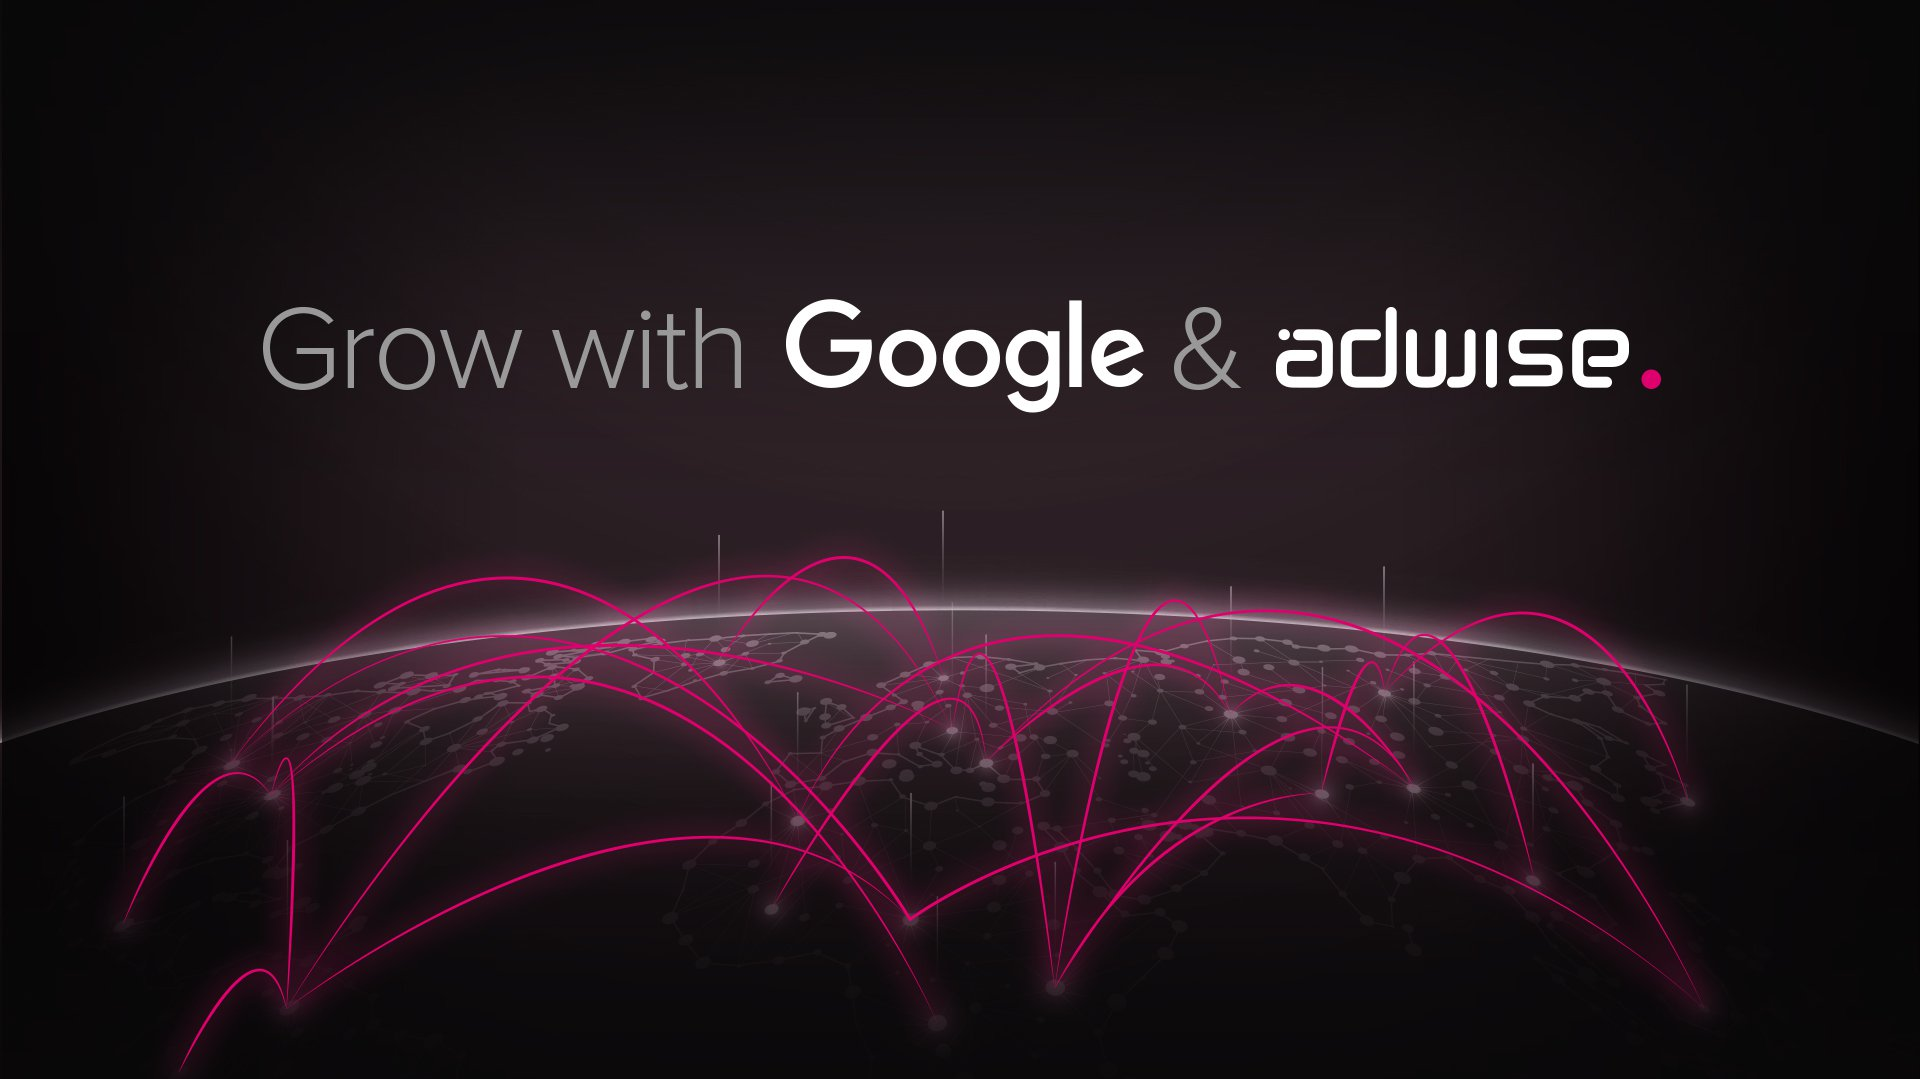 Google verkiest Adwise tot International growth agency